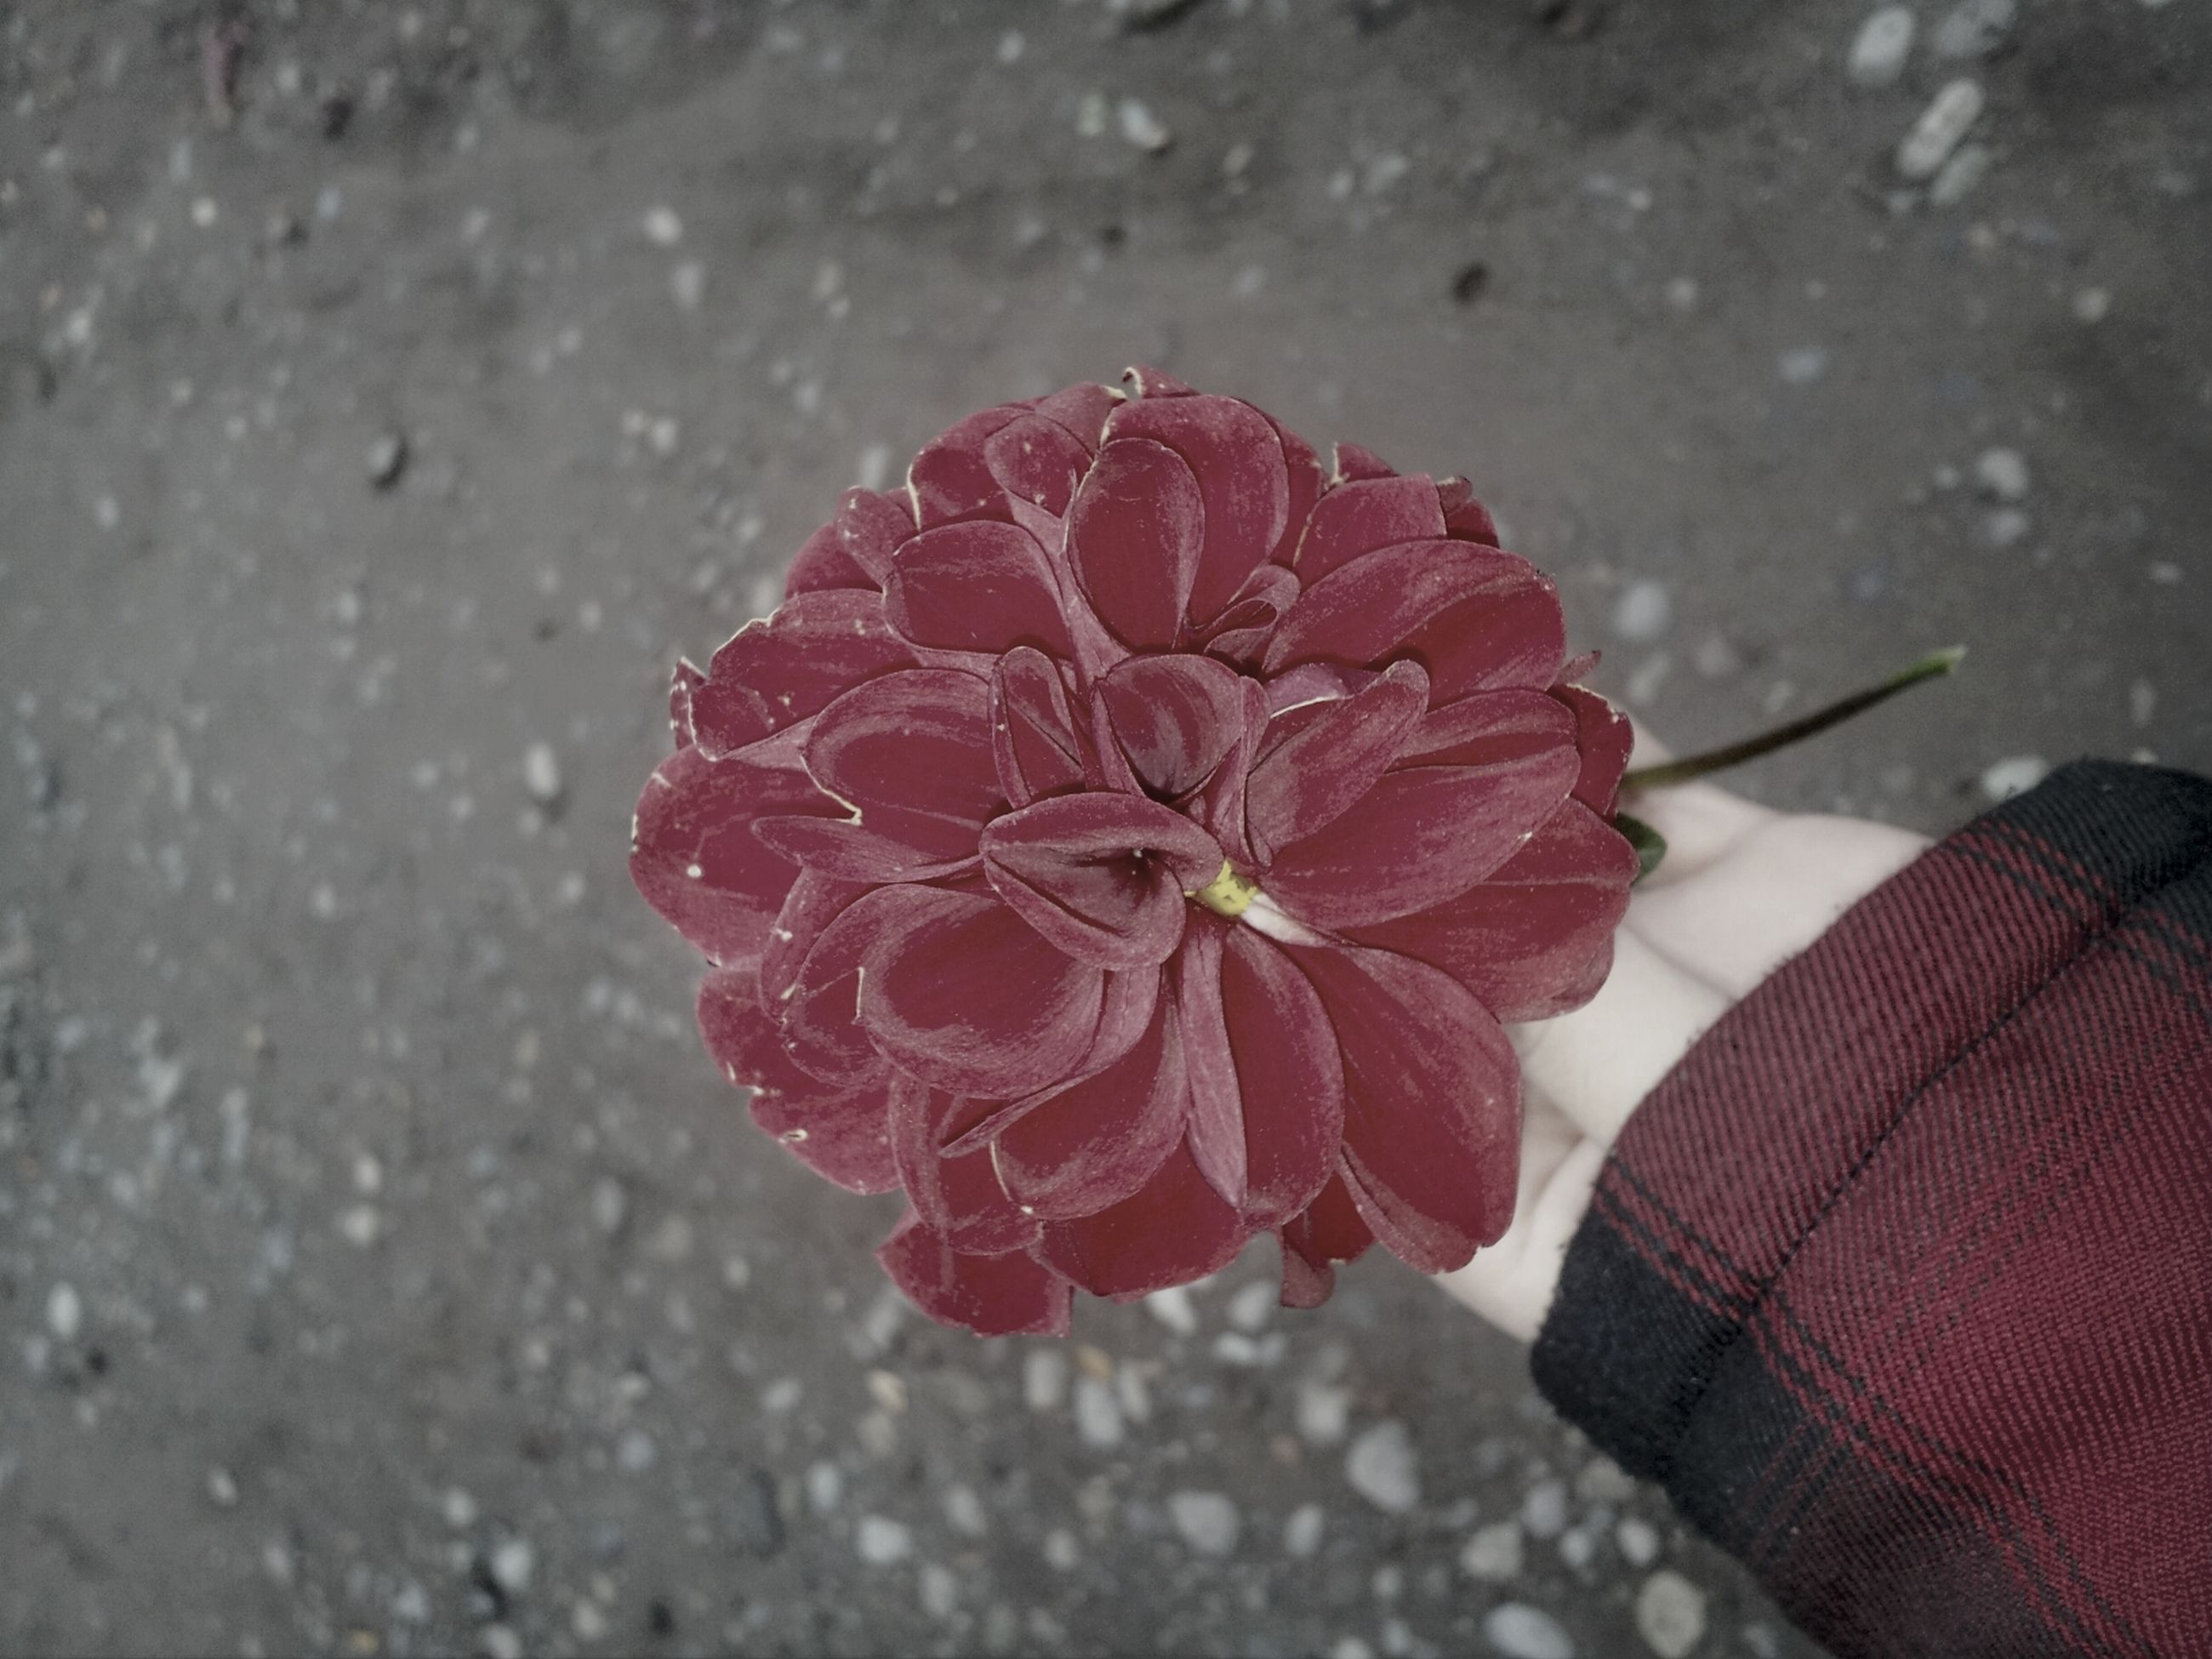 flower, fragility, petal, flower head, close-up, single flower, high angle view, freshness, nature, beauty in nature, red, wet, water, pink color, outdoors, season, day, directly above, growth, no people